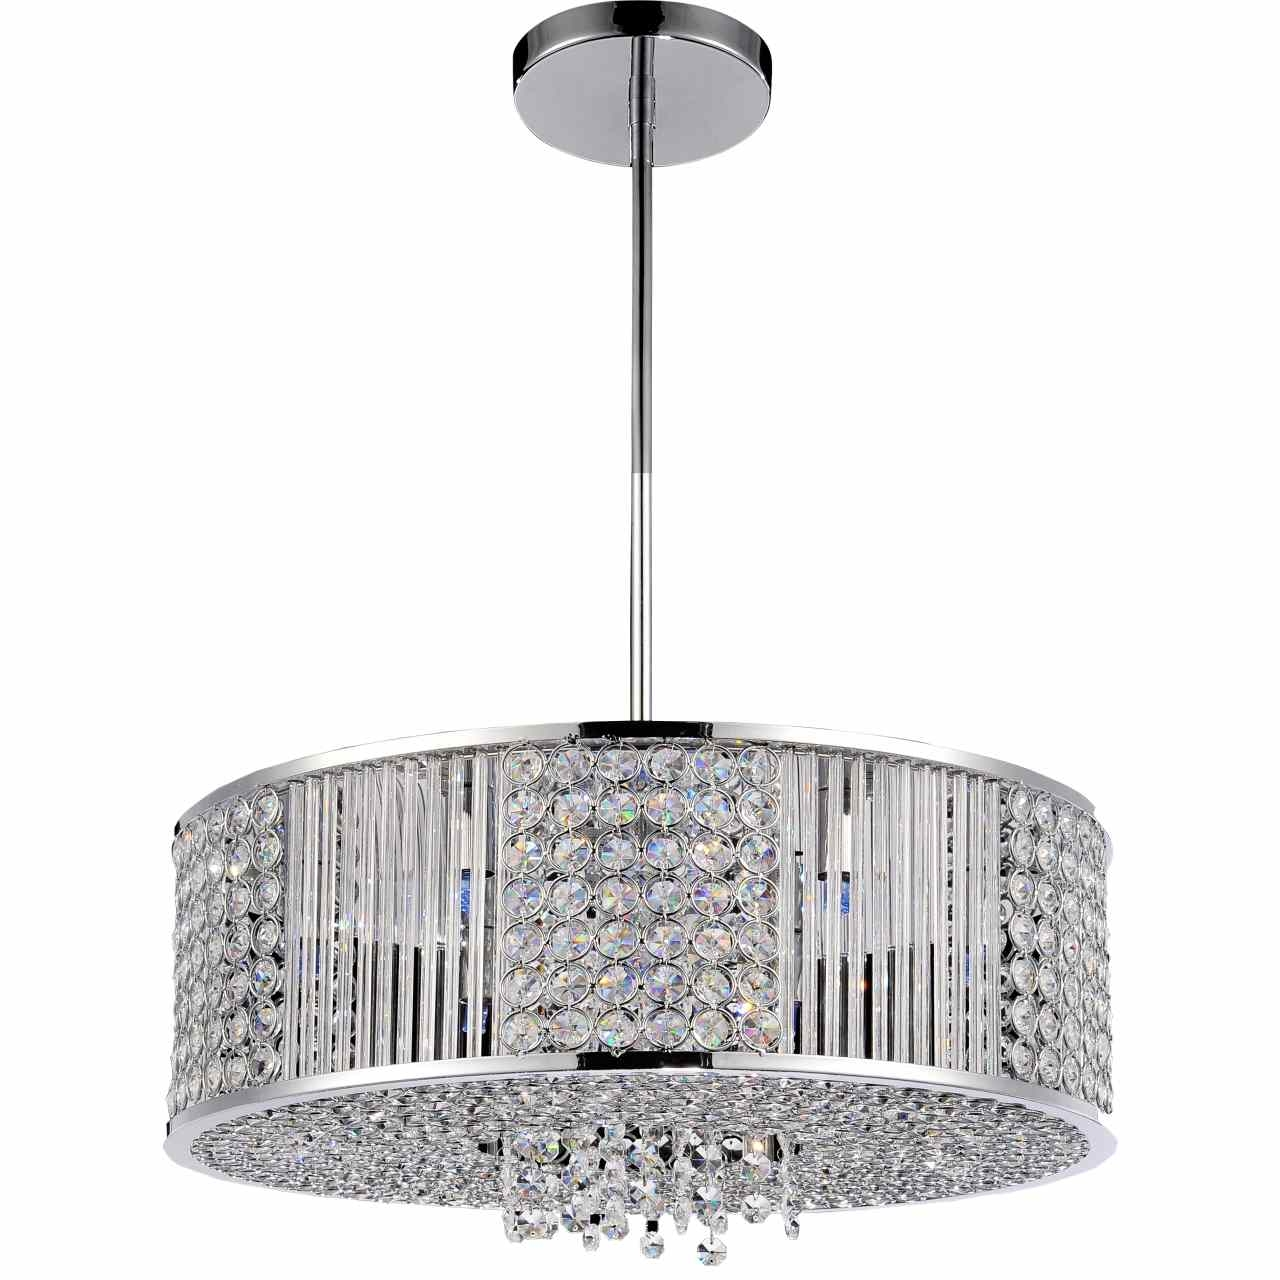 Popular Photo of Modern Chrome Chandeliers